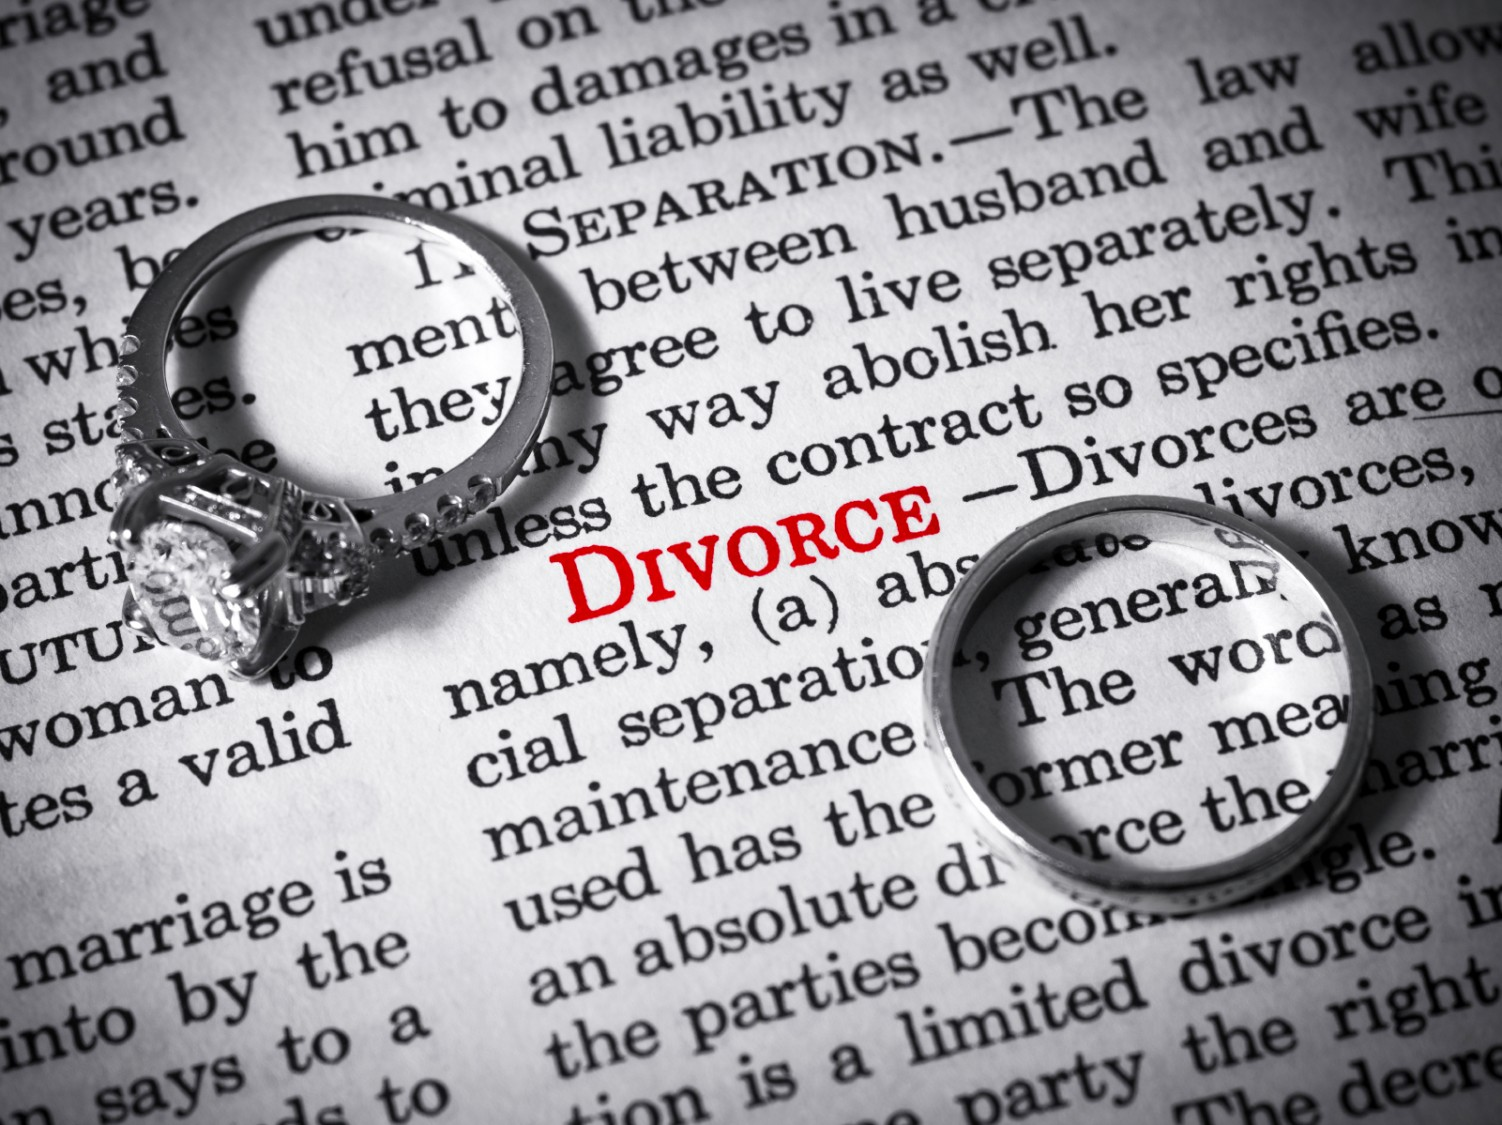 the basic divorce process rils